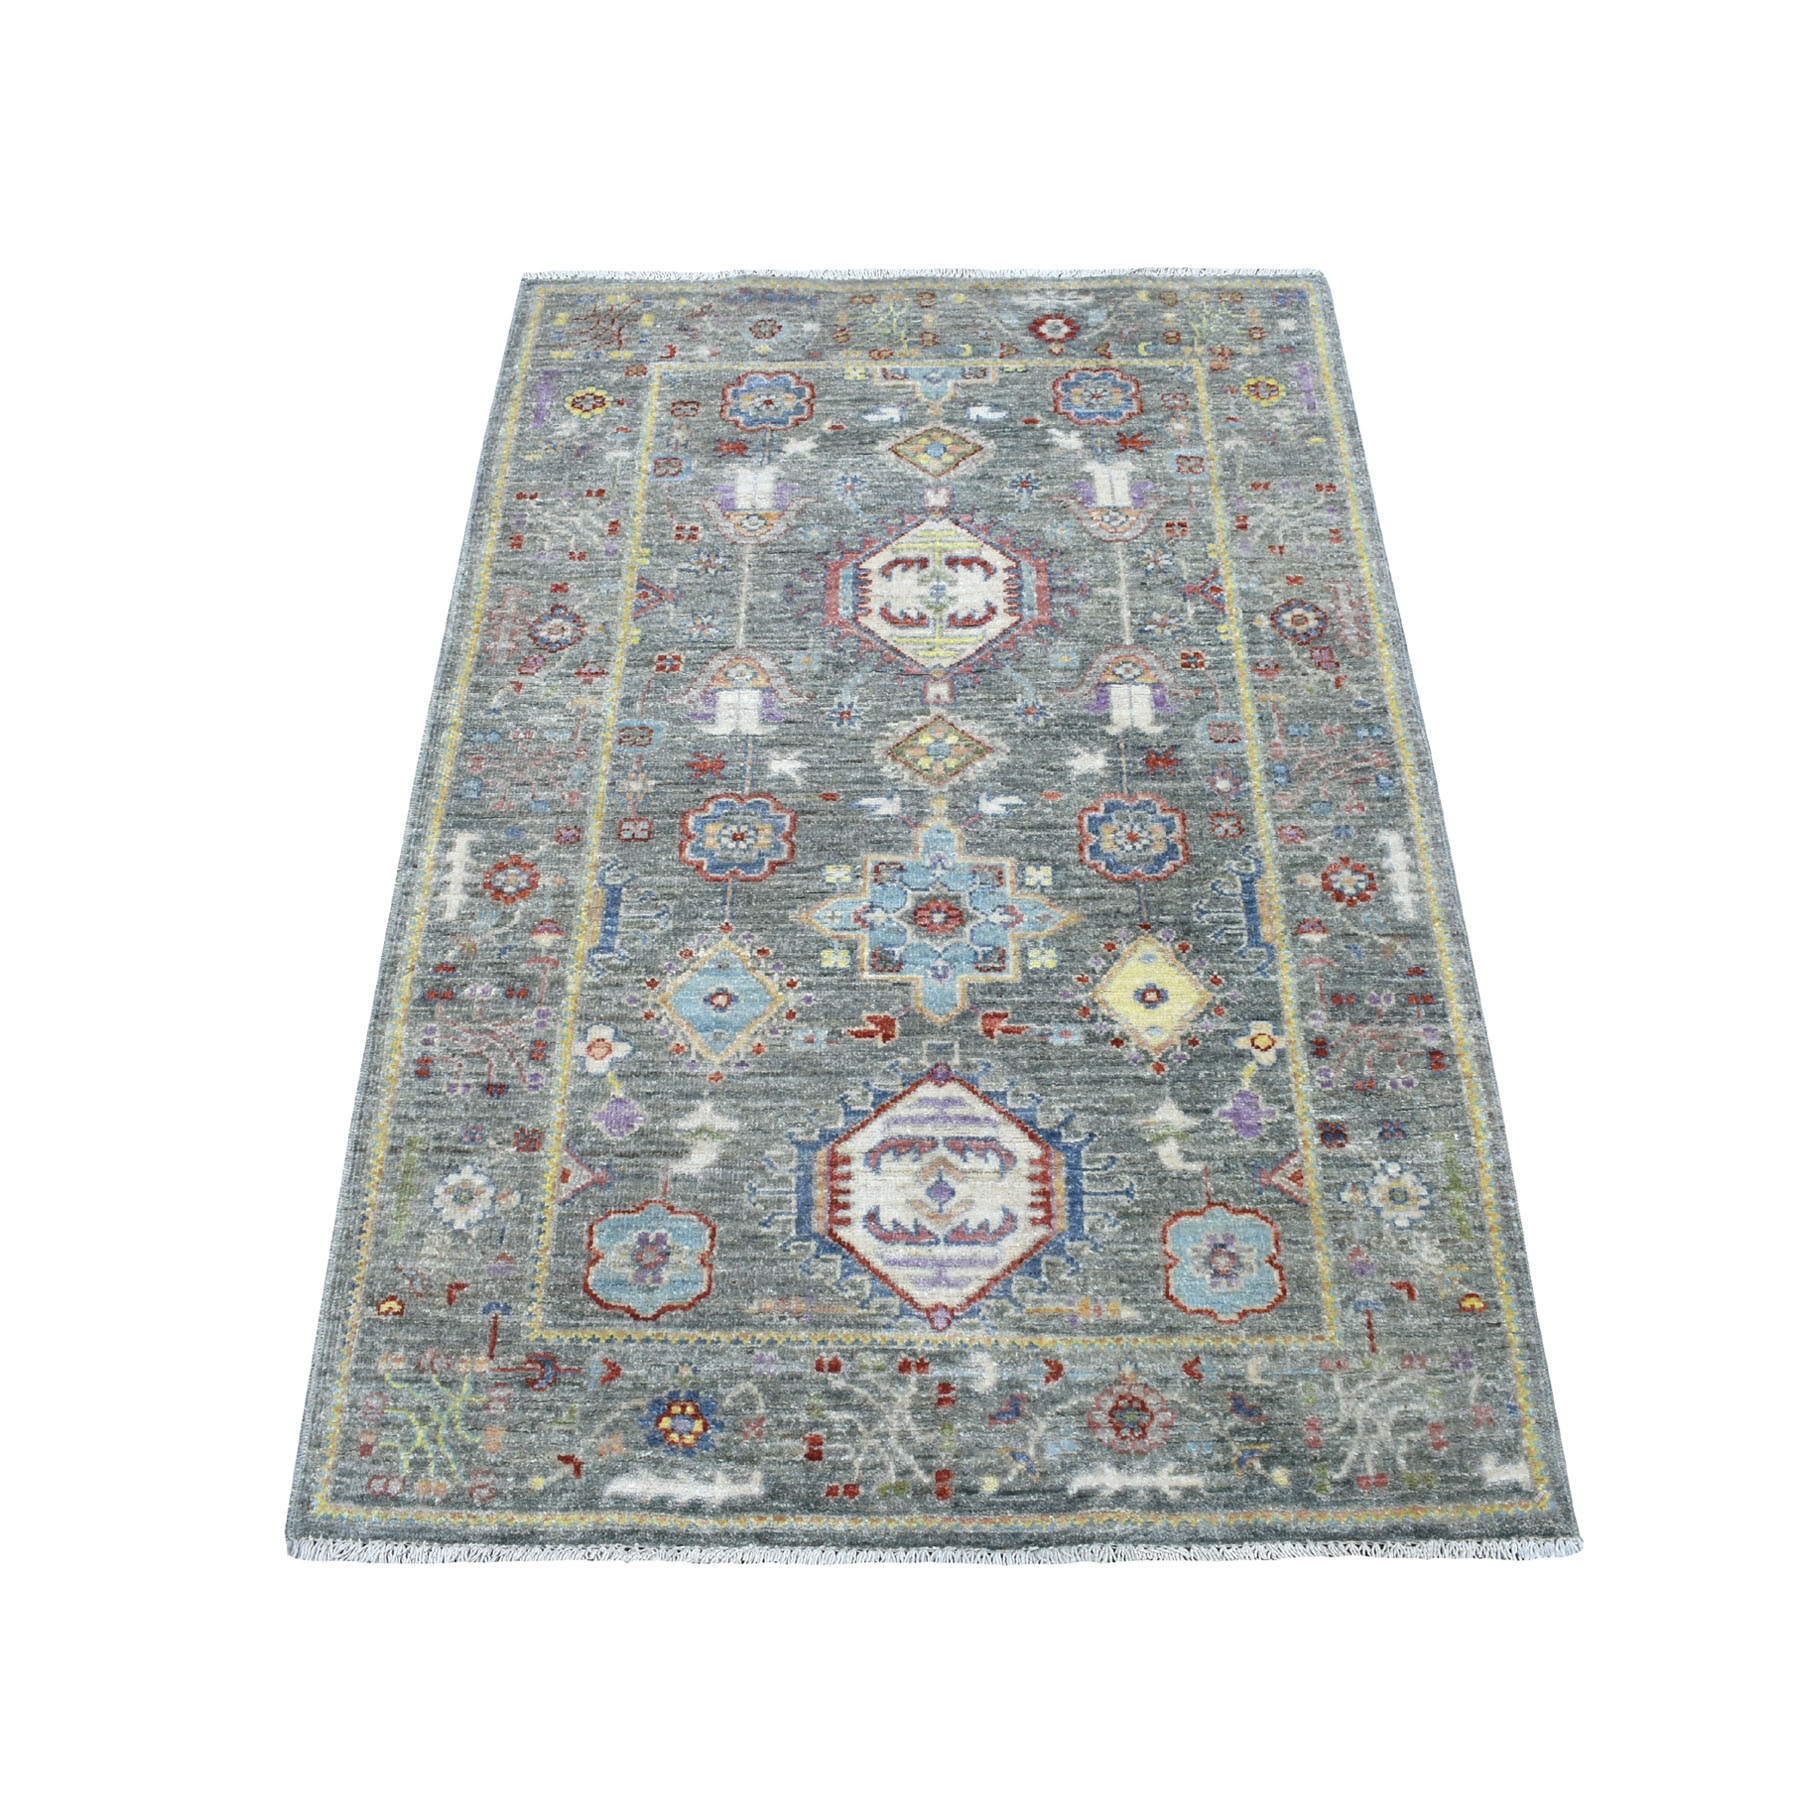 3'x5' Colorful Peshawar With Karajeh Design Pure Wool Hand Knotted Oriental Rug